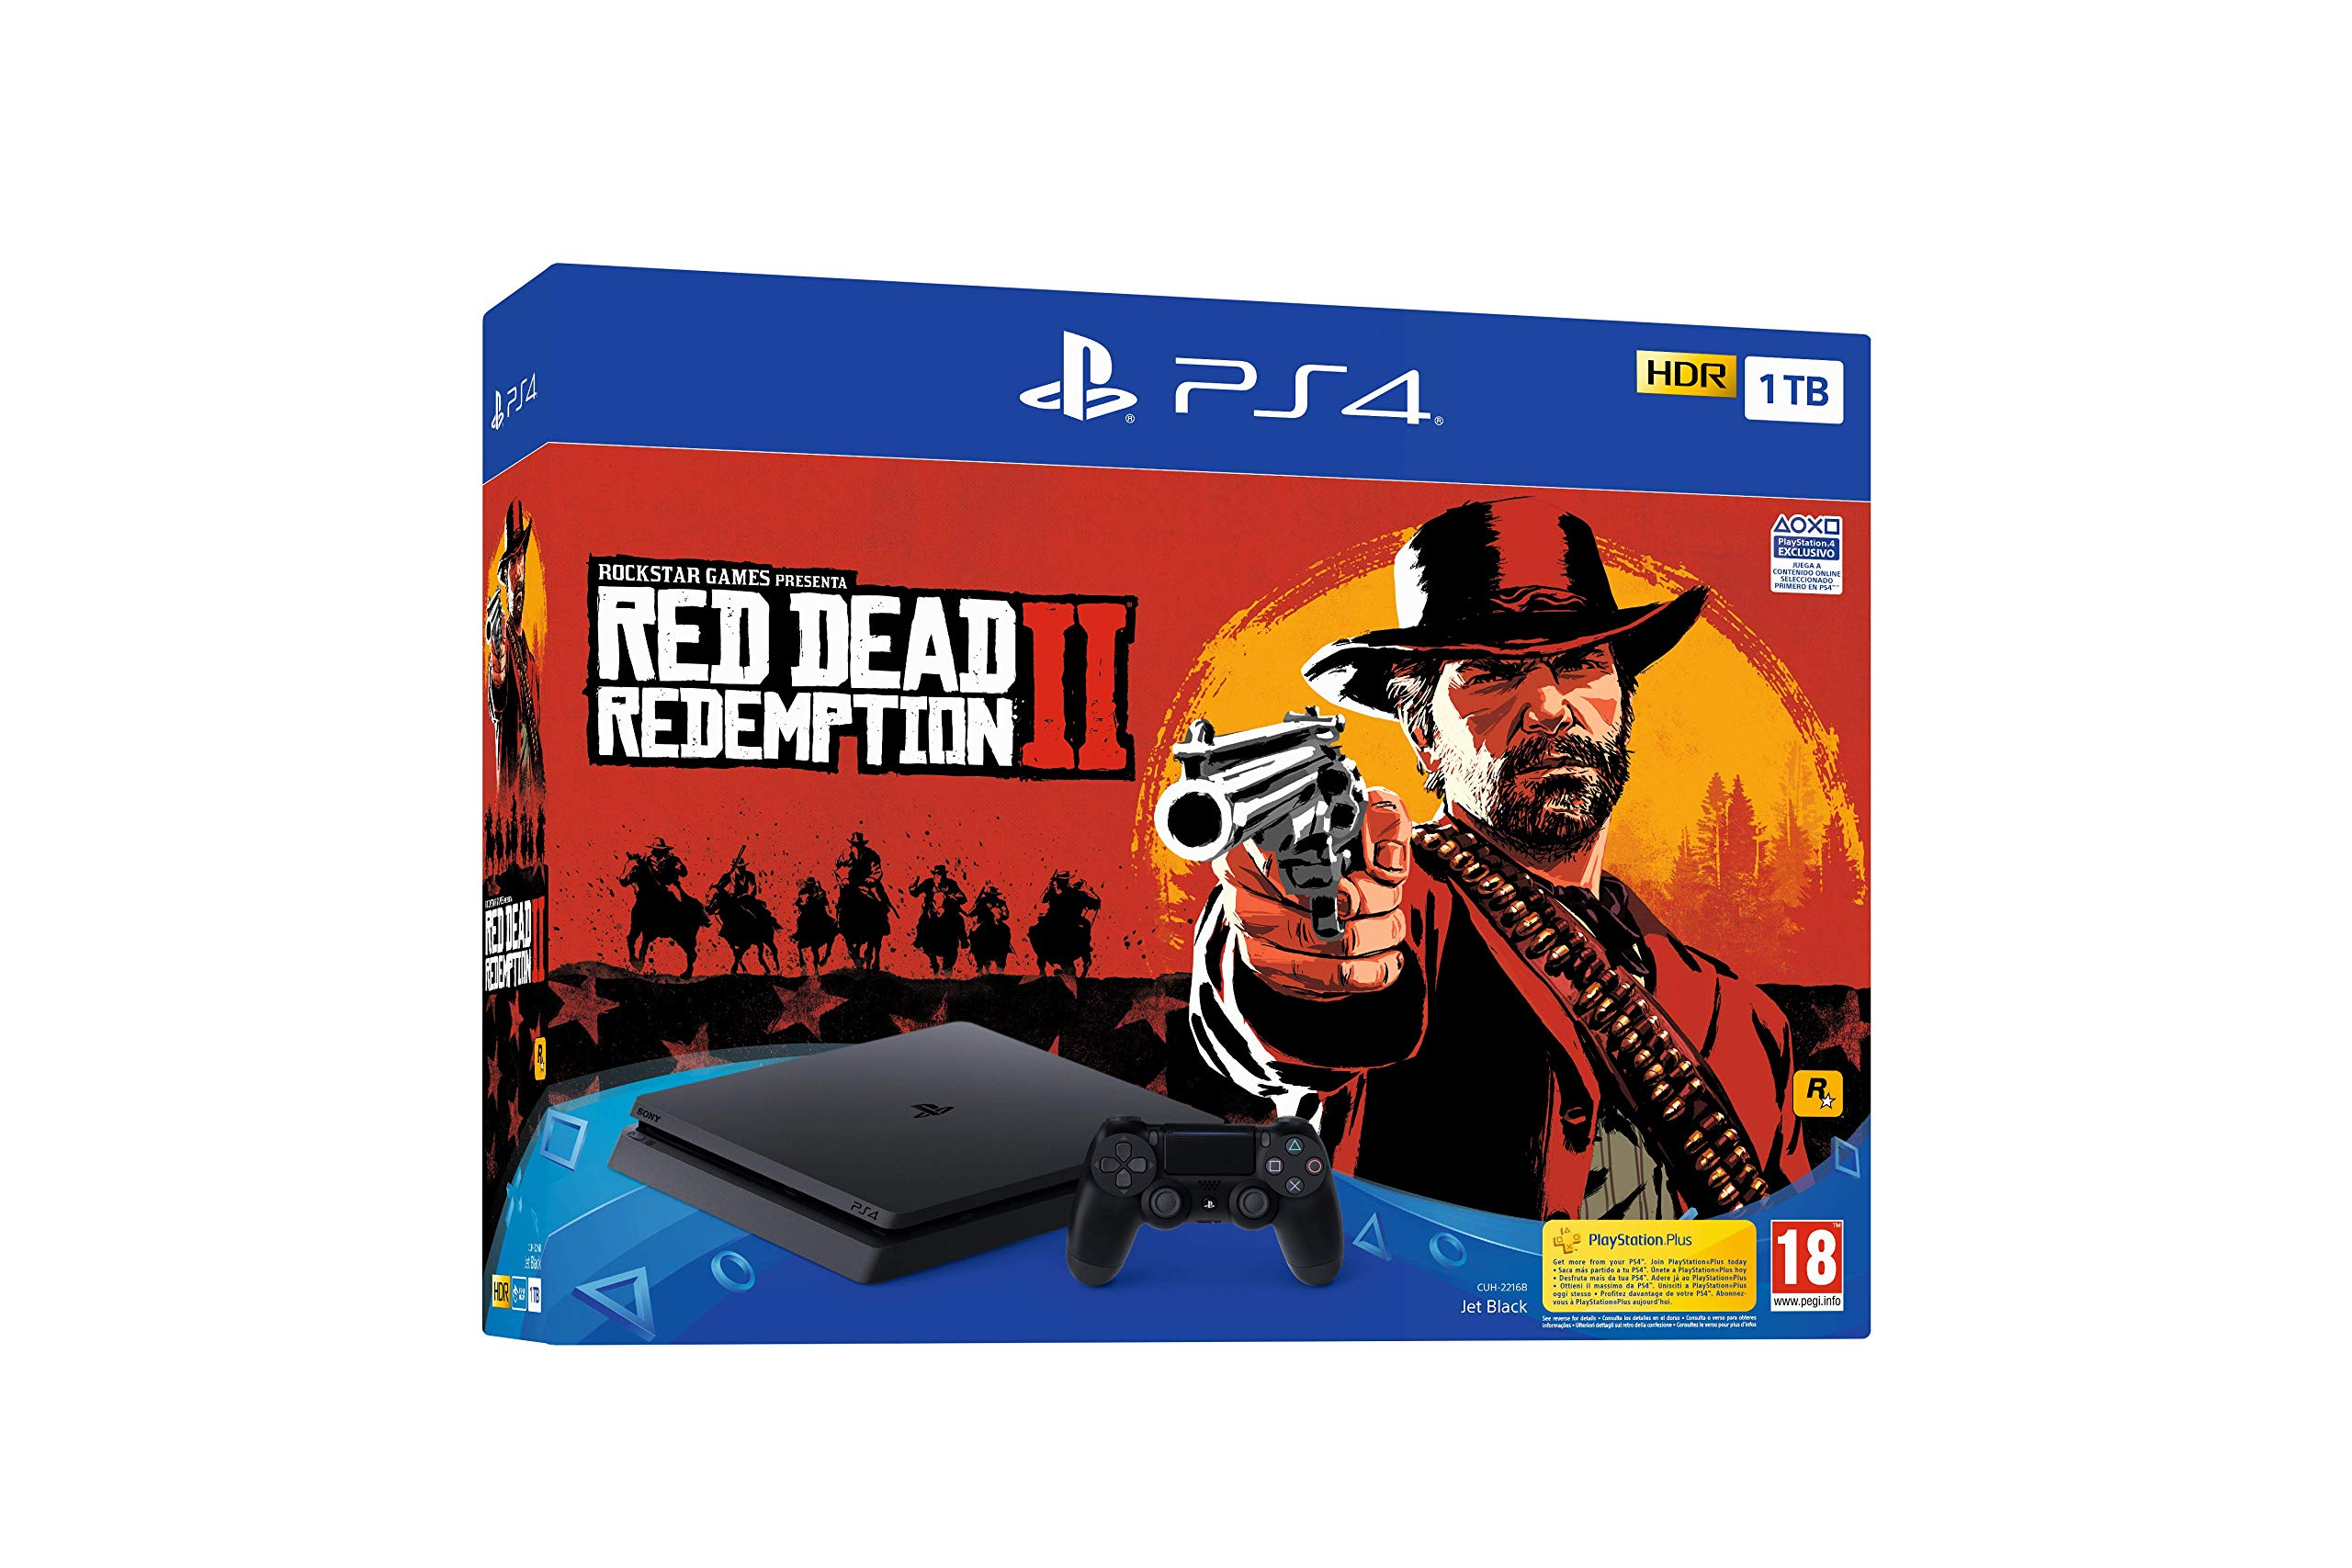 PlayStation-4-PS4-Consola-de-1-TB-Red-Dead-Redemption-II